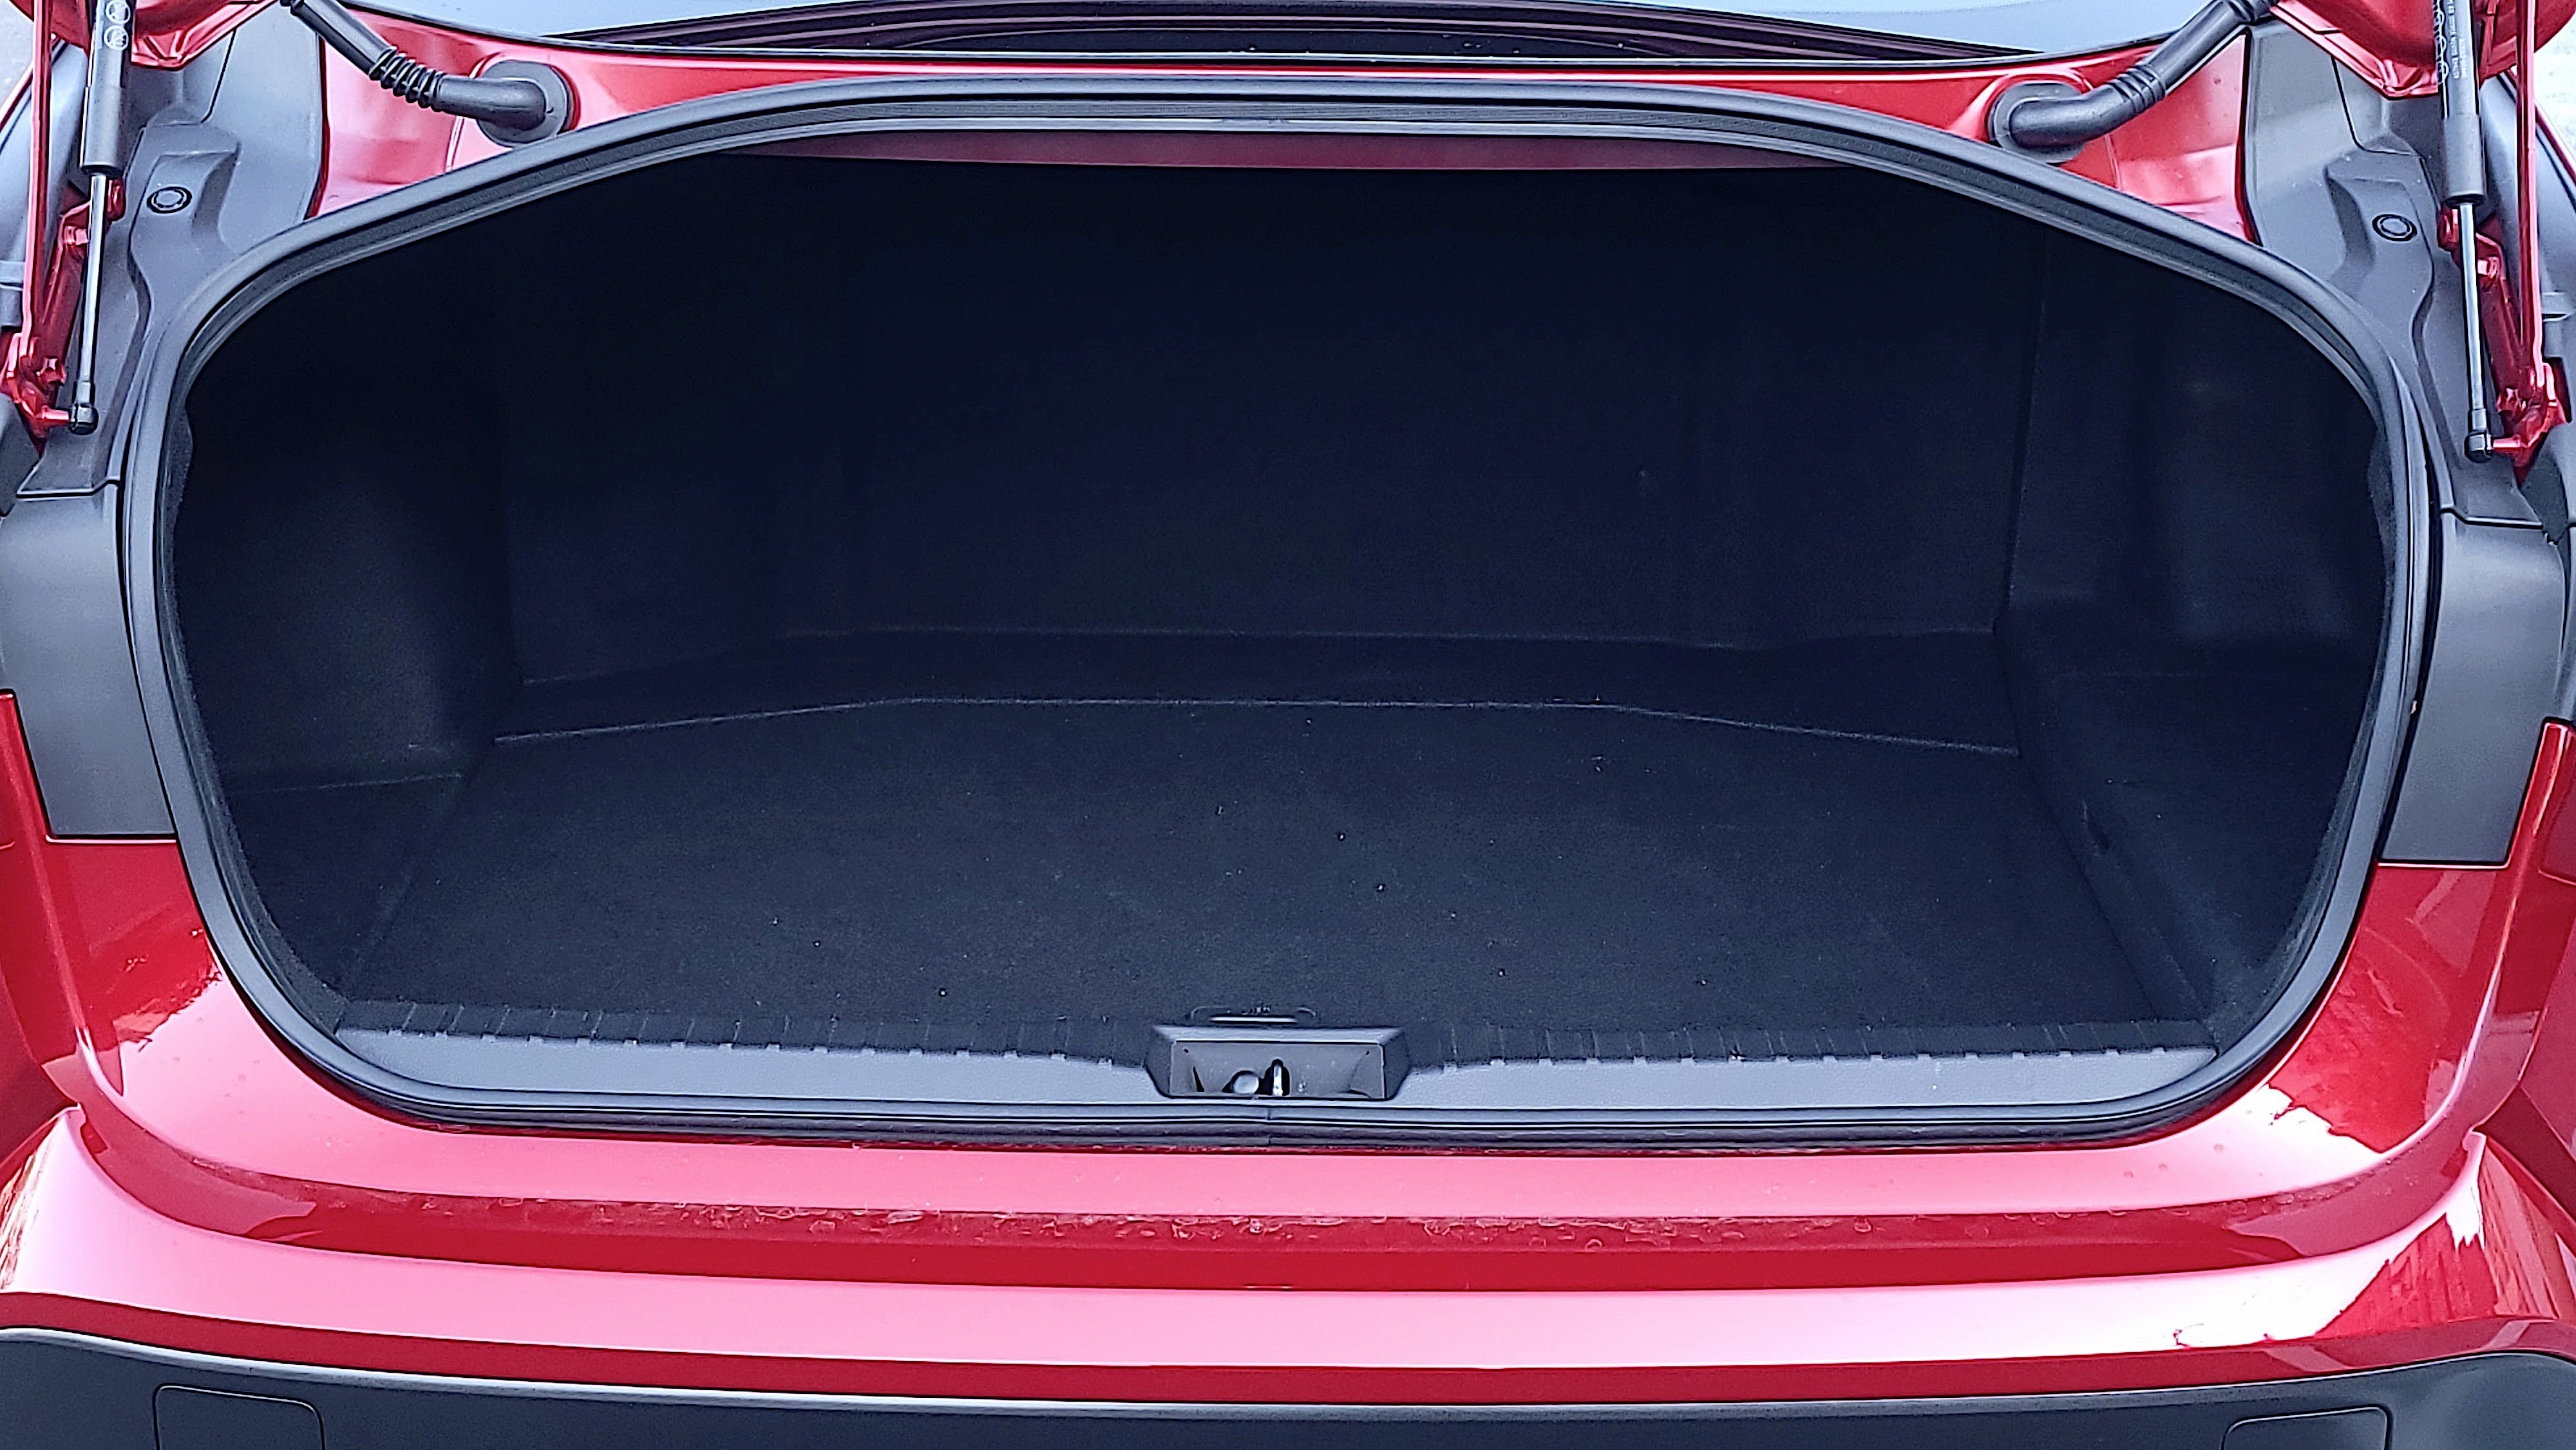 Open tailgate showing the trunk of the Toyota Mirai (2021)